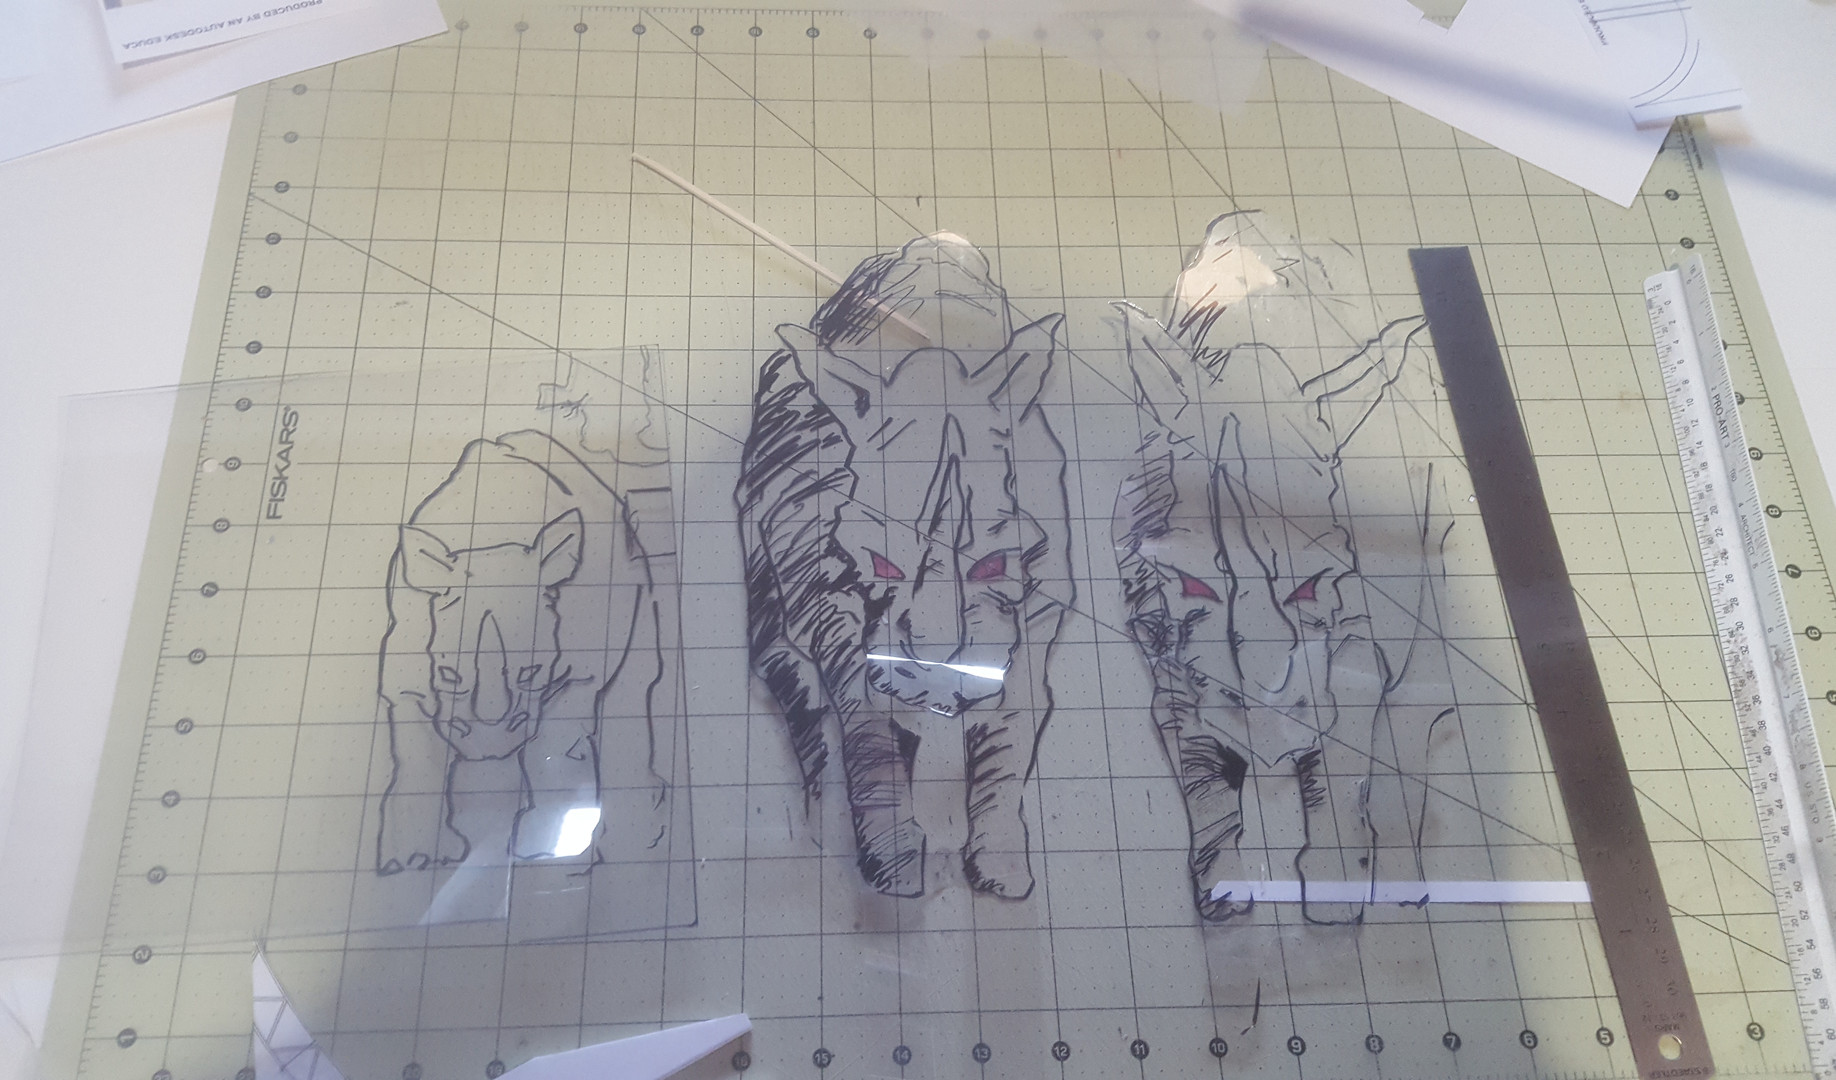 RHINO TRANSPARENCIES